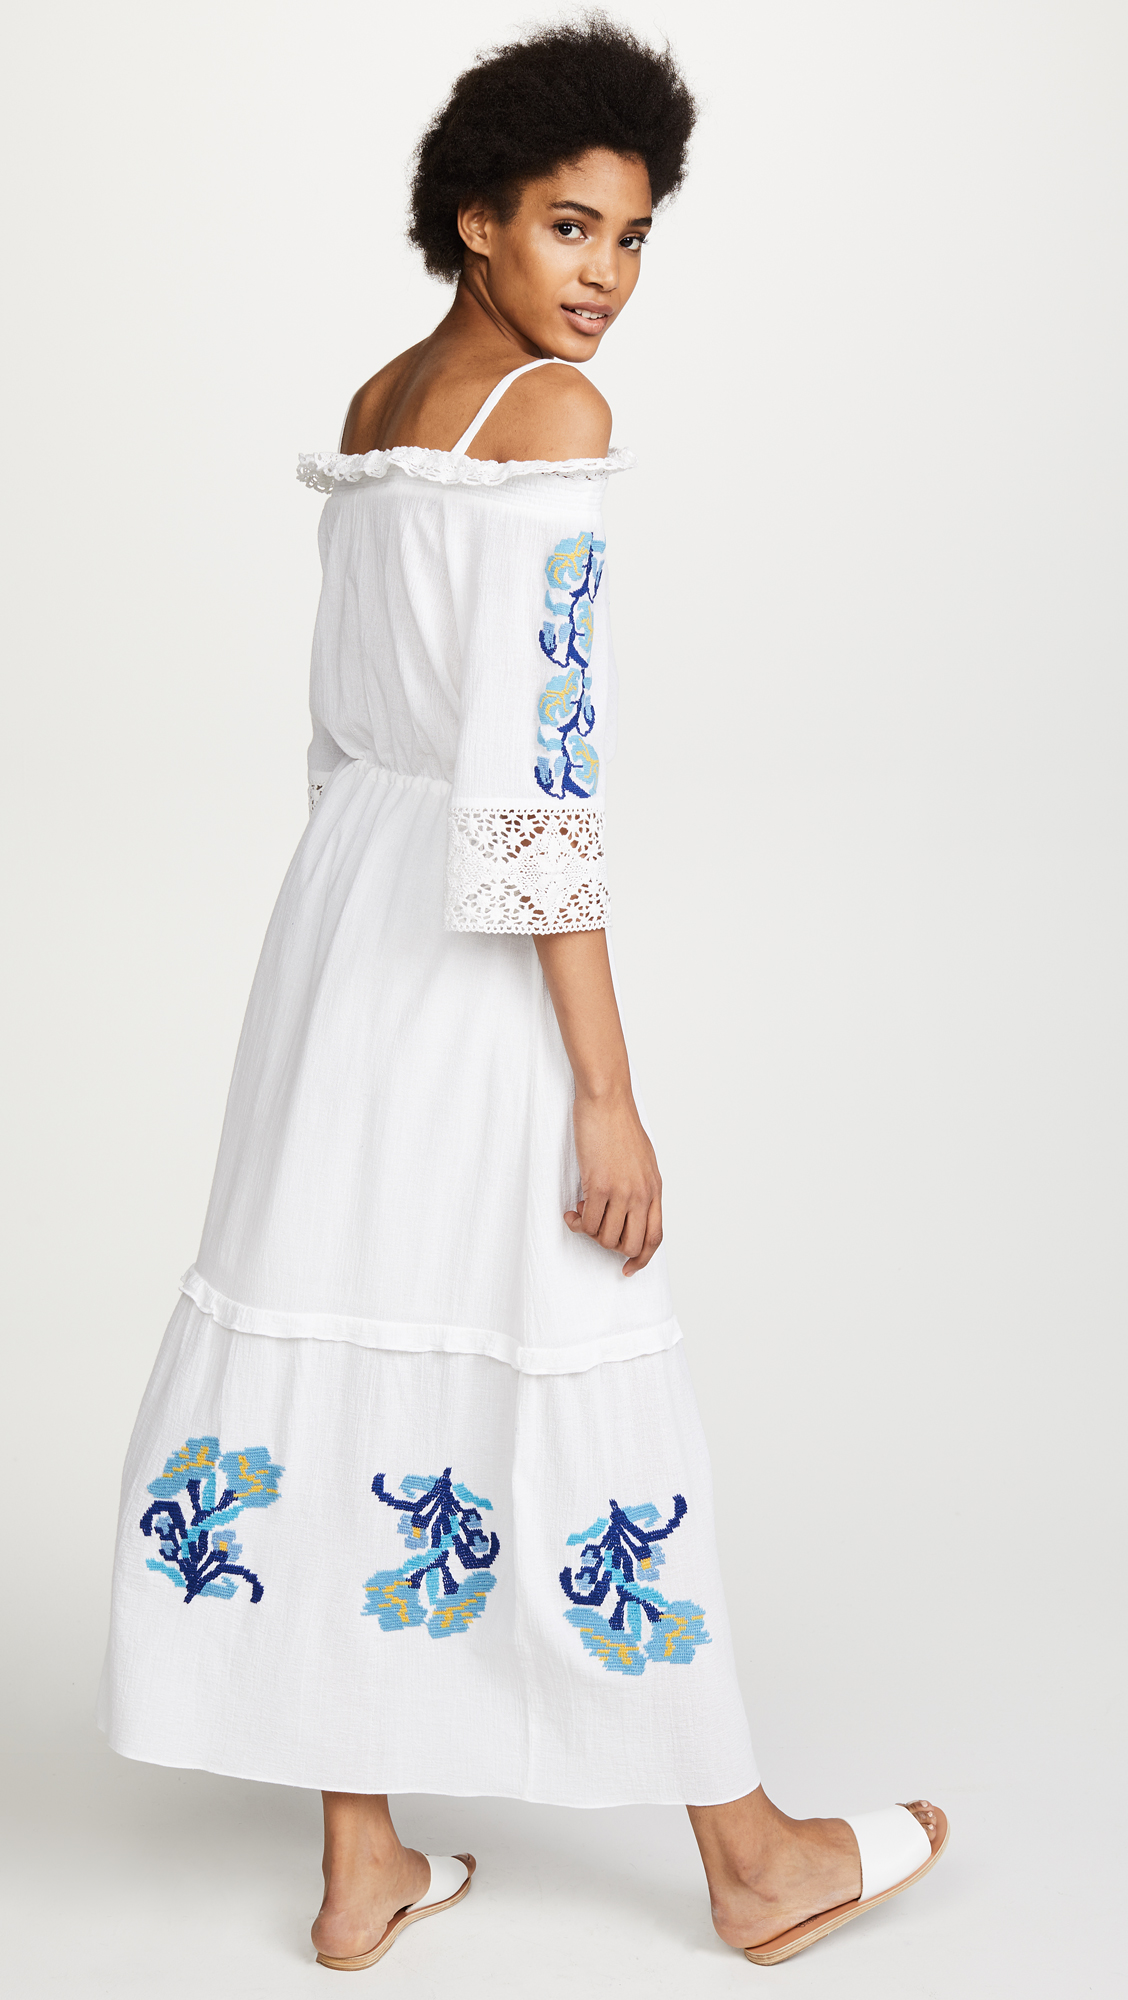 Affordable Cheap Online Eastbay Online Noelle Dress - White Figue Sale Really Genuine hbflvTU6T